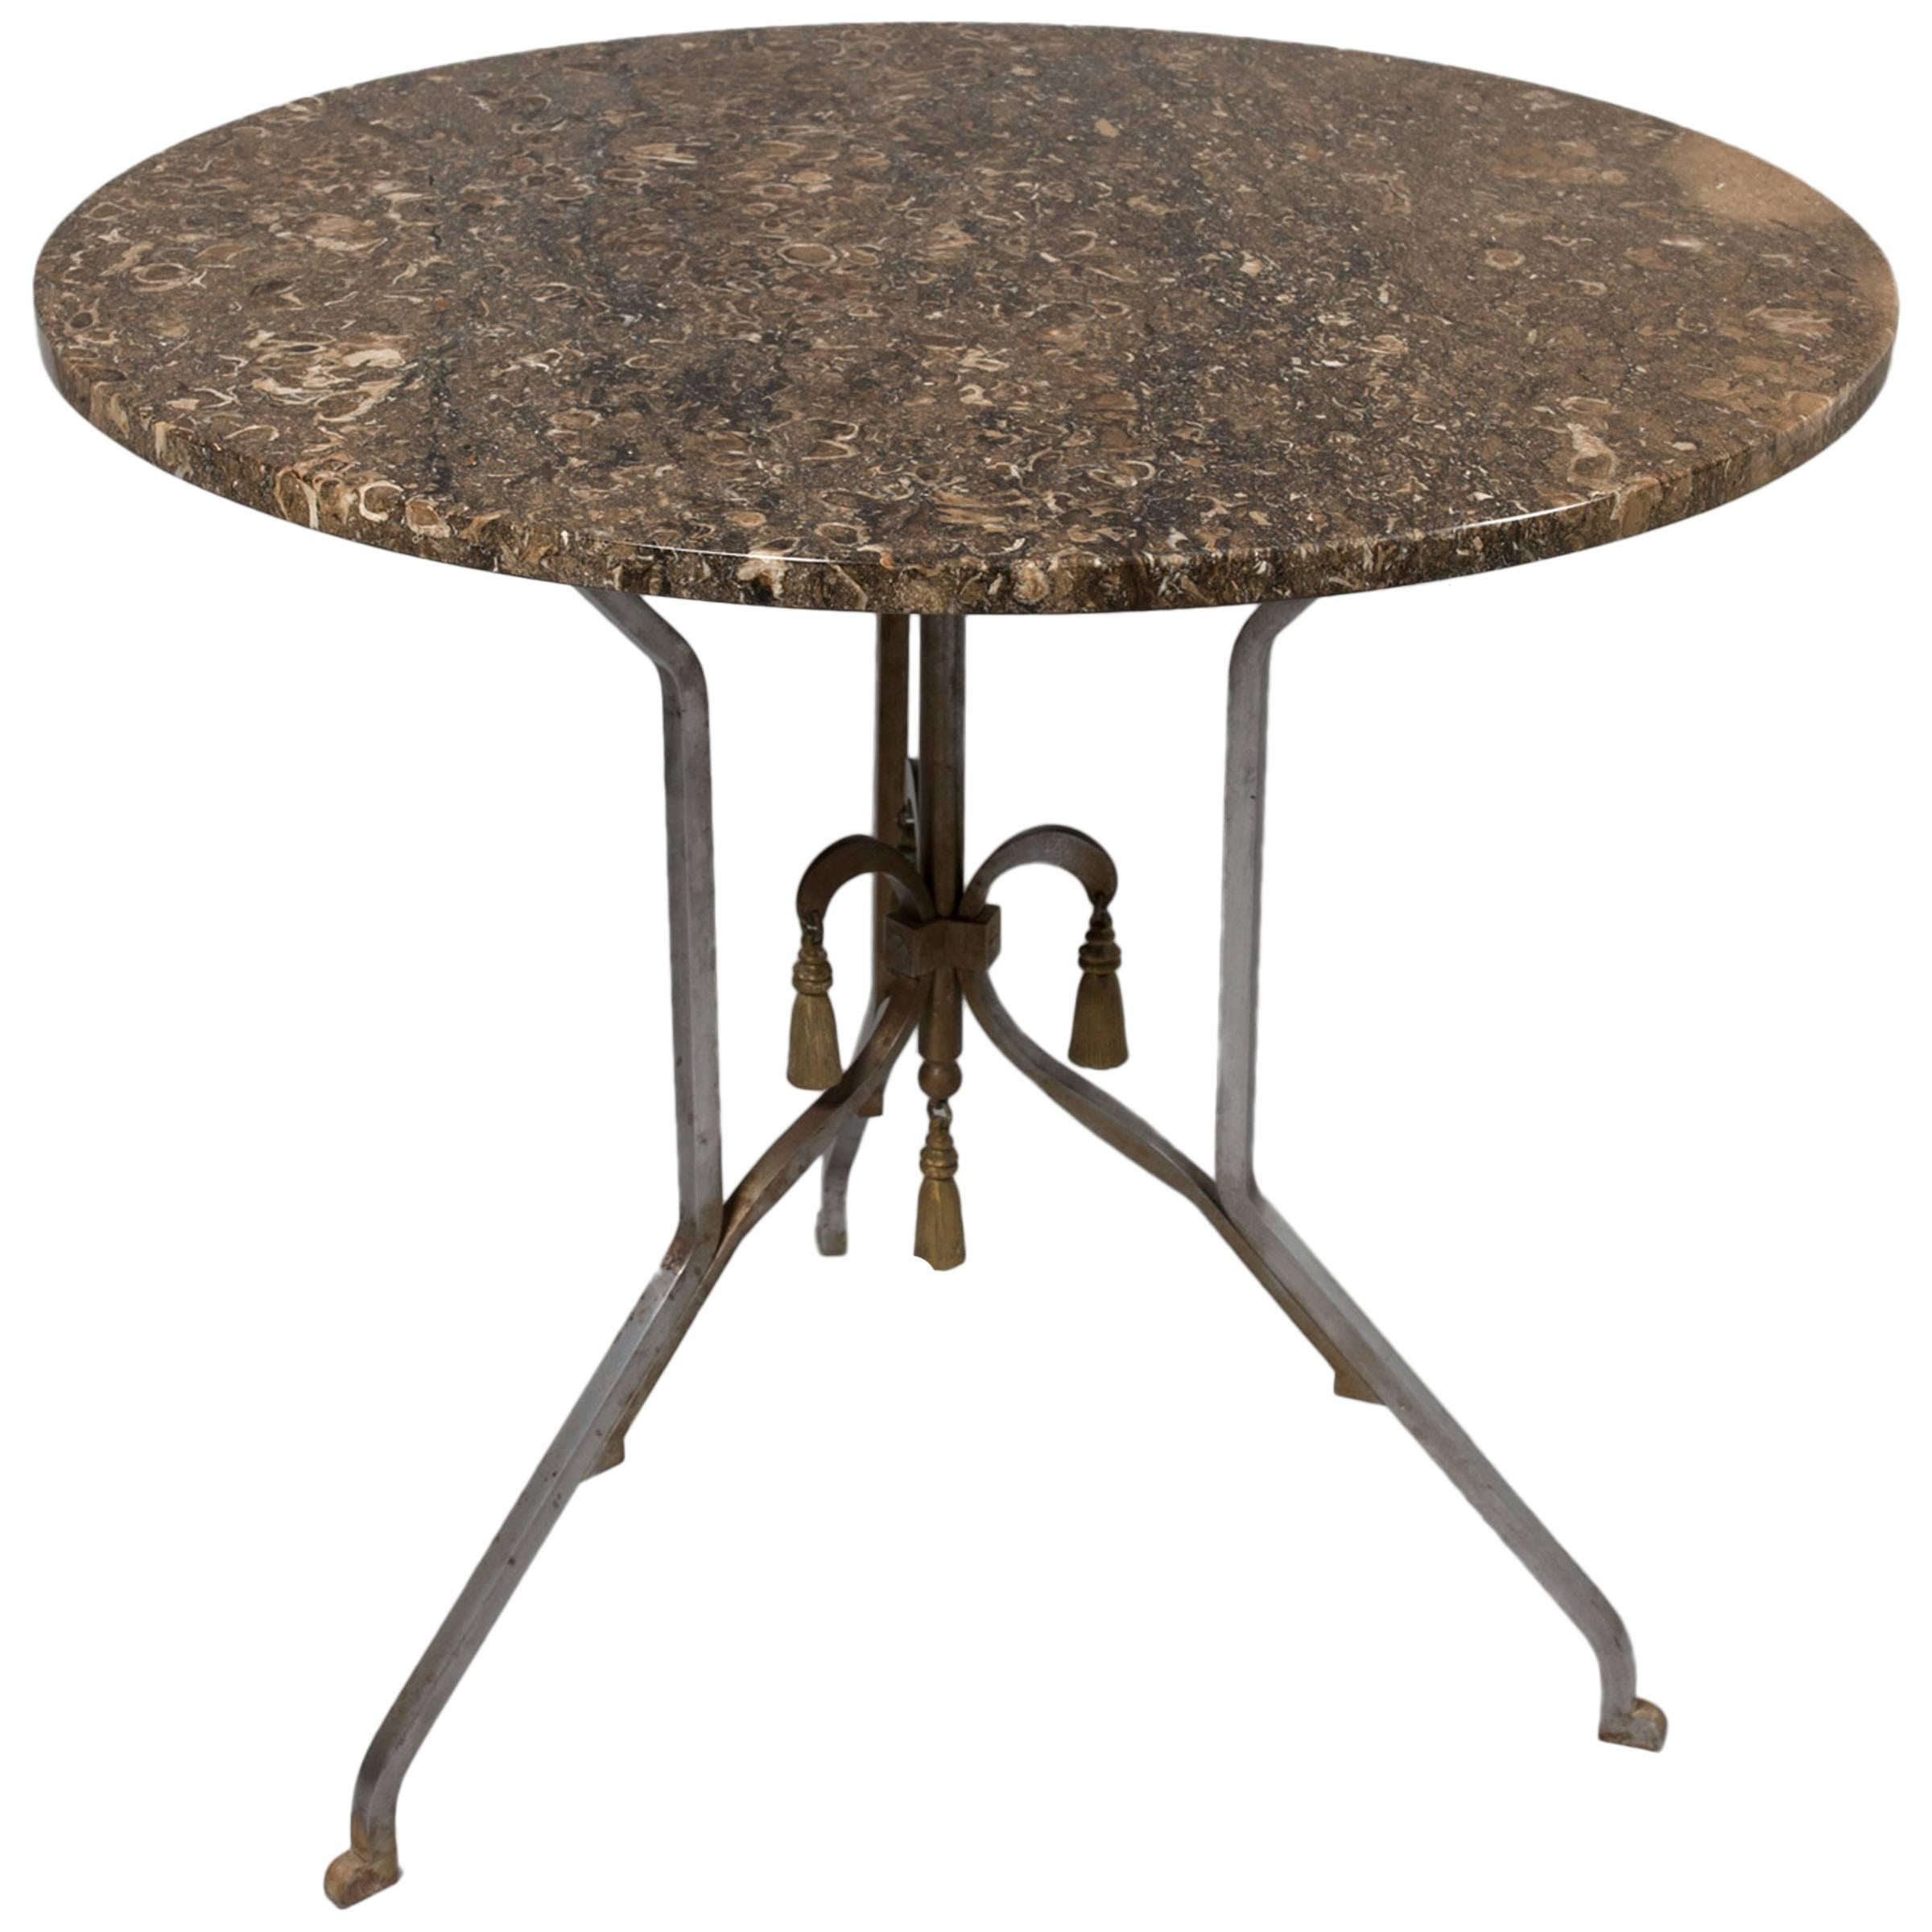 Jansen Attributed to Round Occasional Table